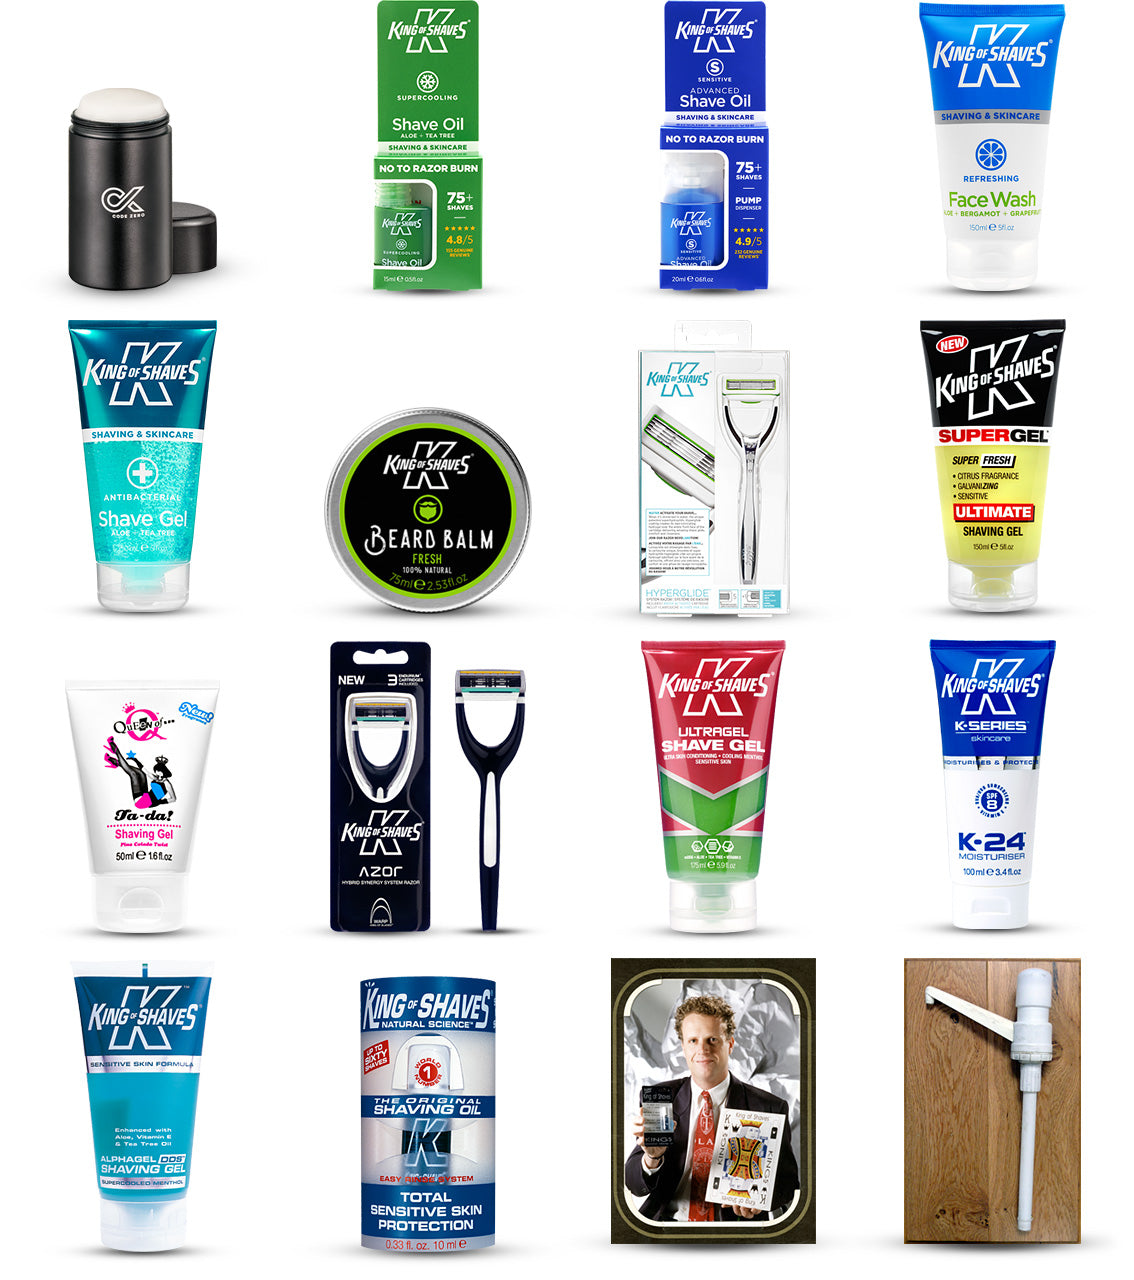 King of Shaves was founded in 1993